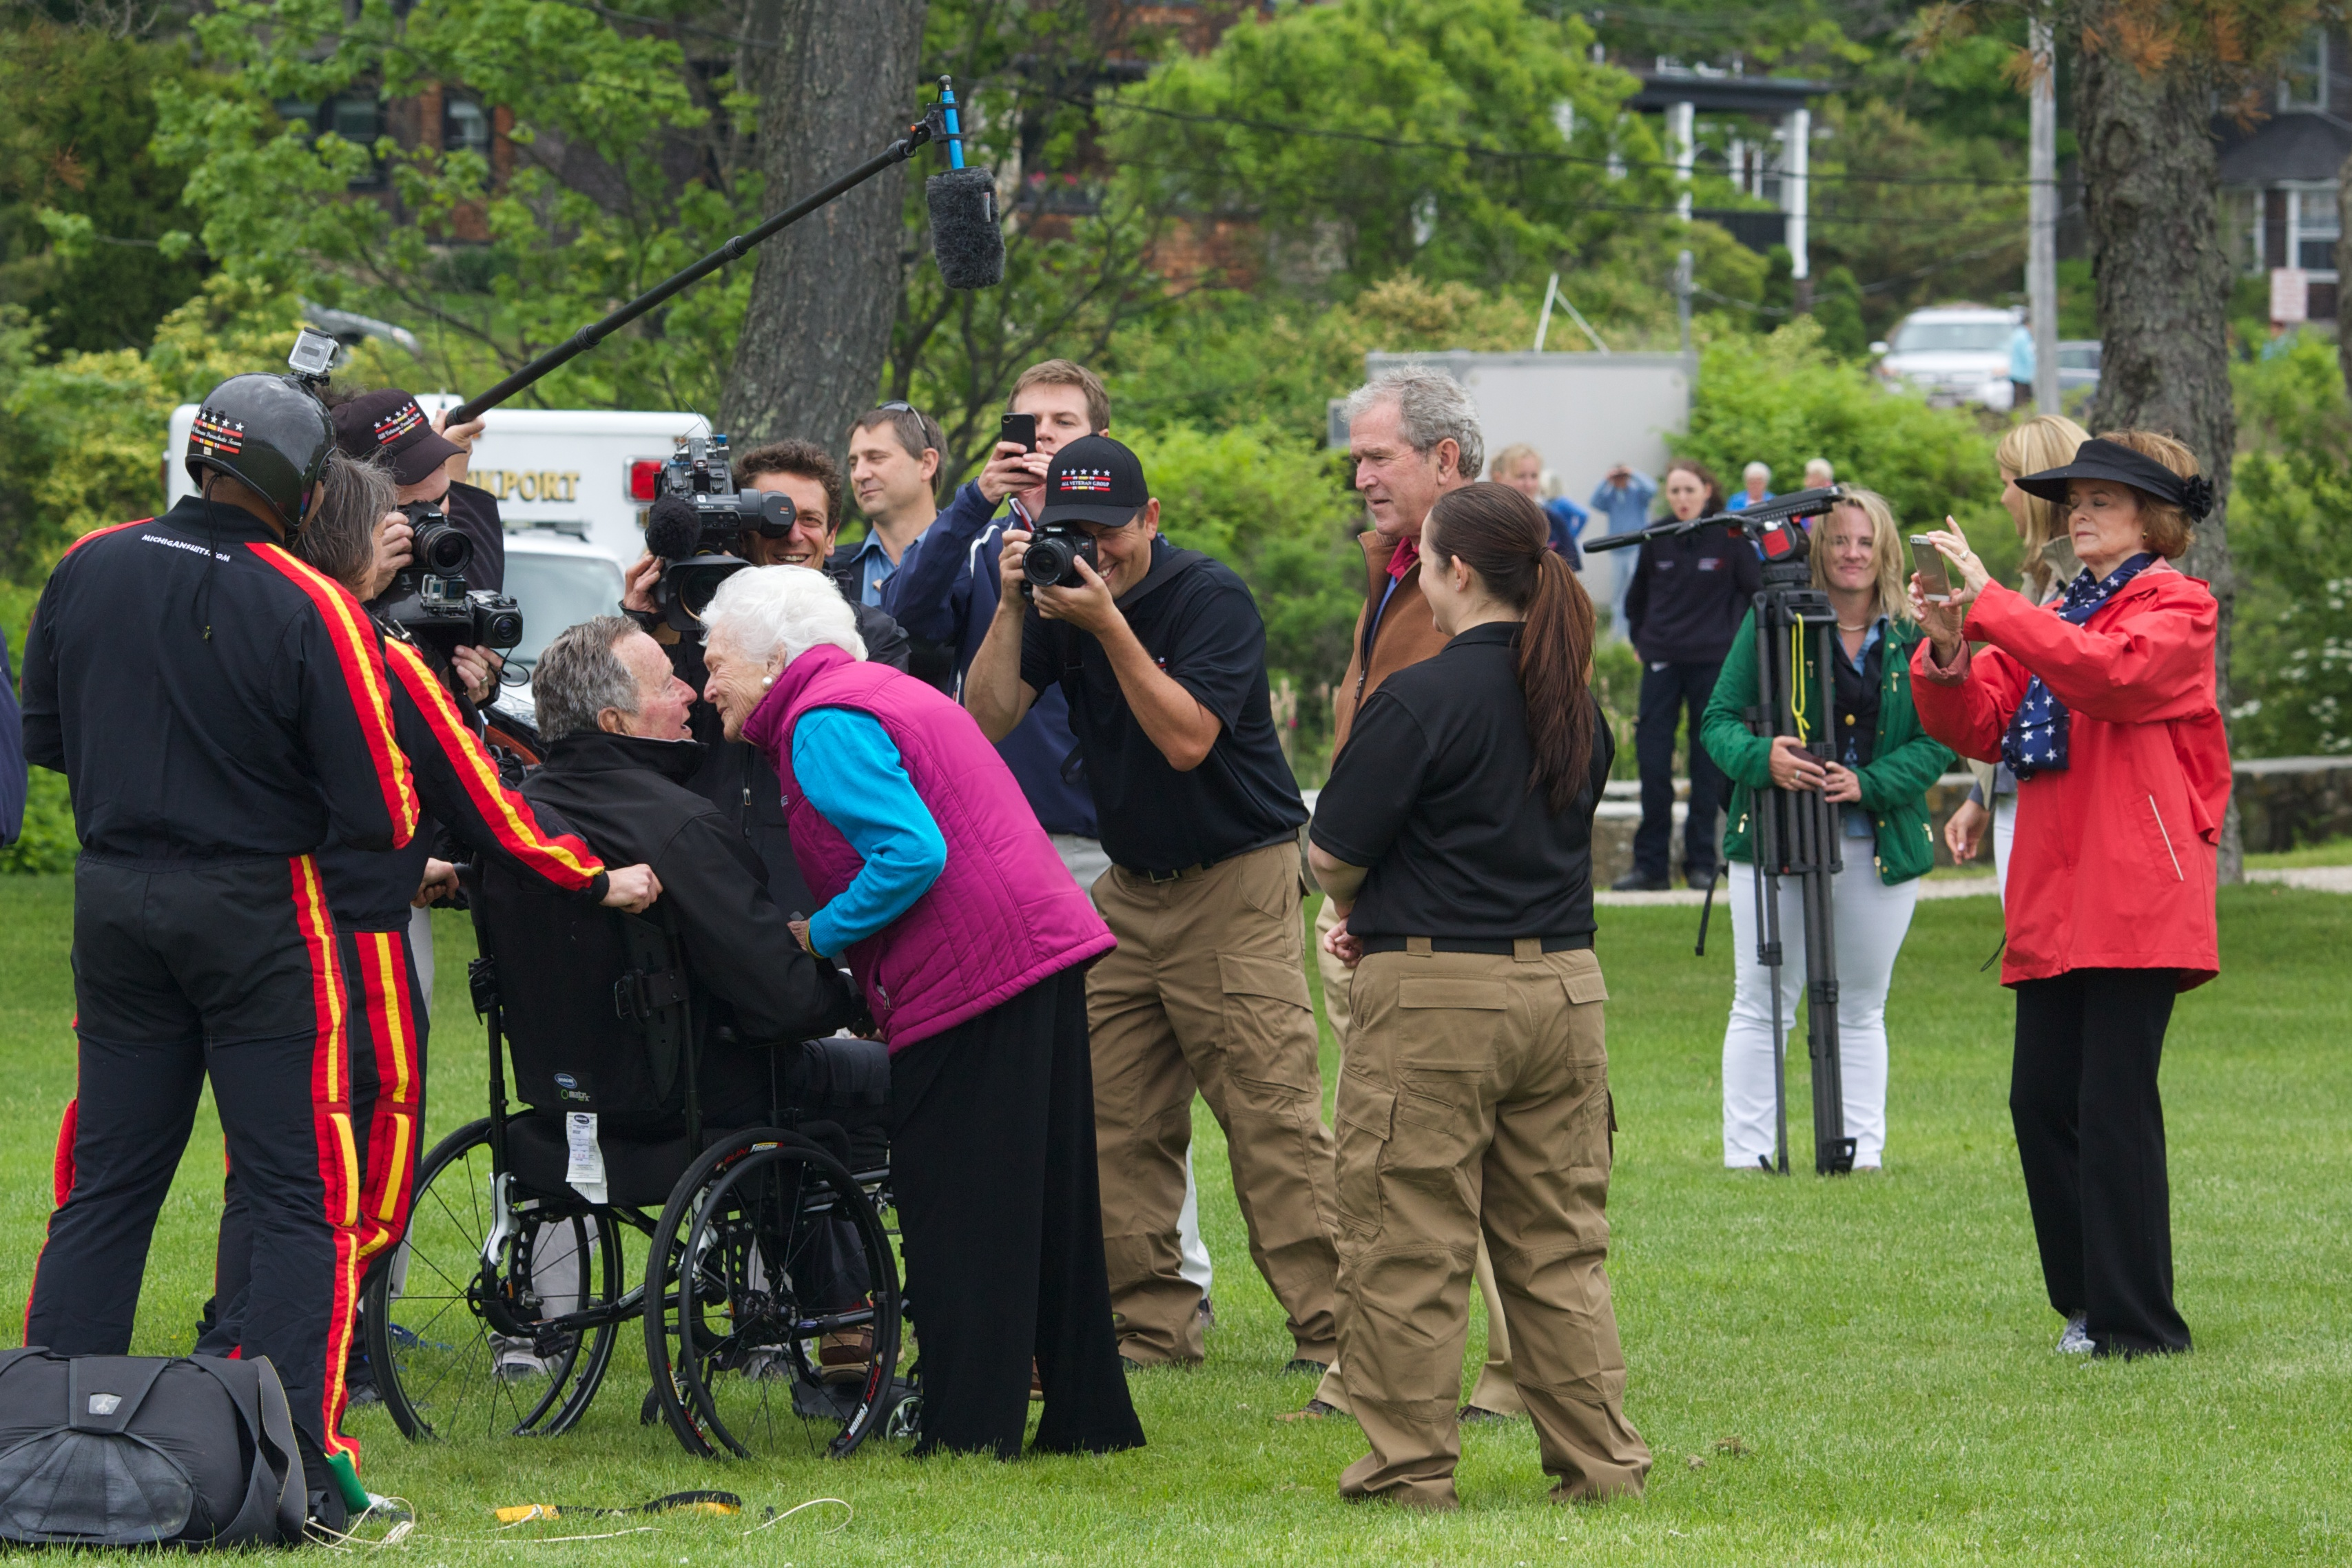 Former first lady Barbara Bush greeted her husband and former U.S. President George H.W. Bush with a kiss after his successful skydive down to St. Anne's Episcopal Church on June 12, 2014 in Kennebunkport, Maine. The President was celebrating his 90th birthday today.